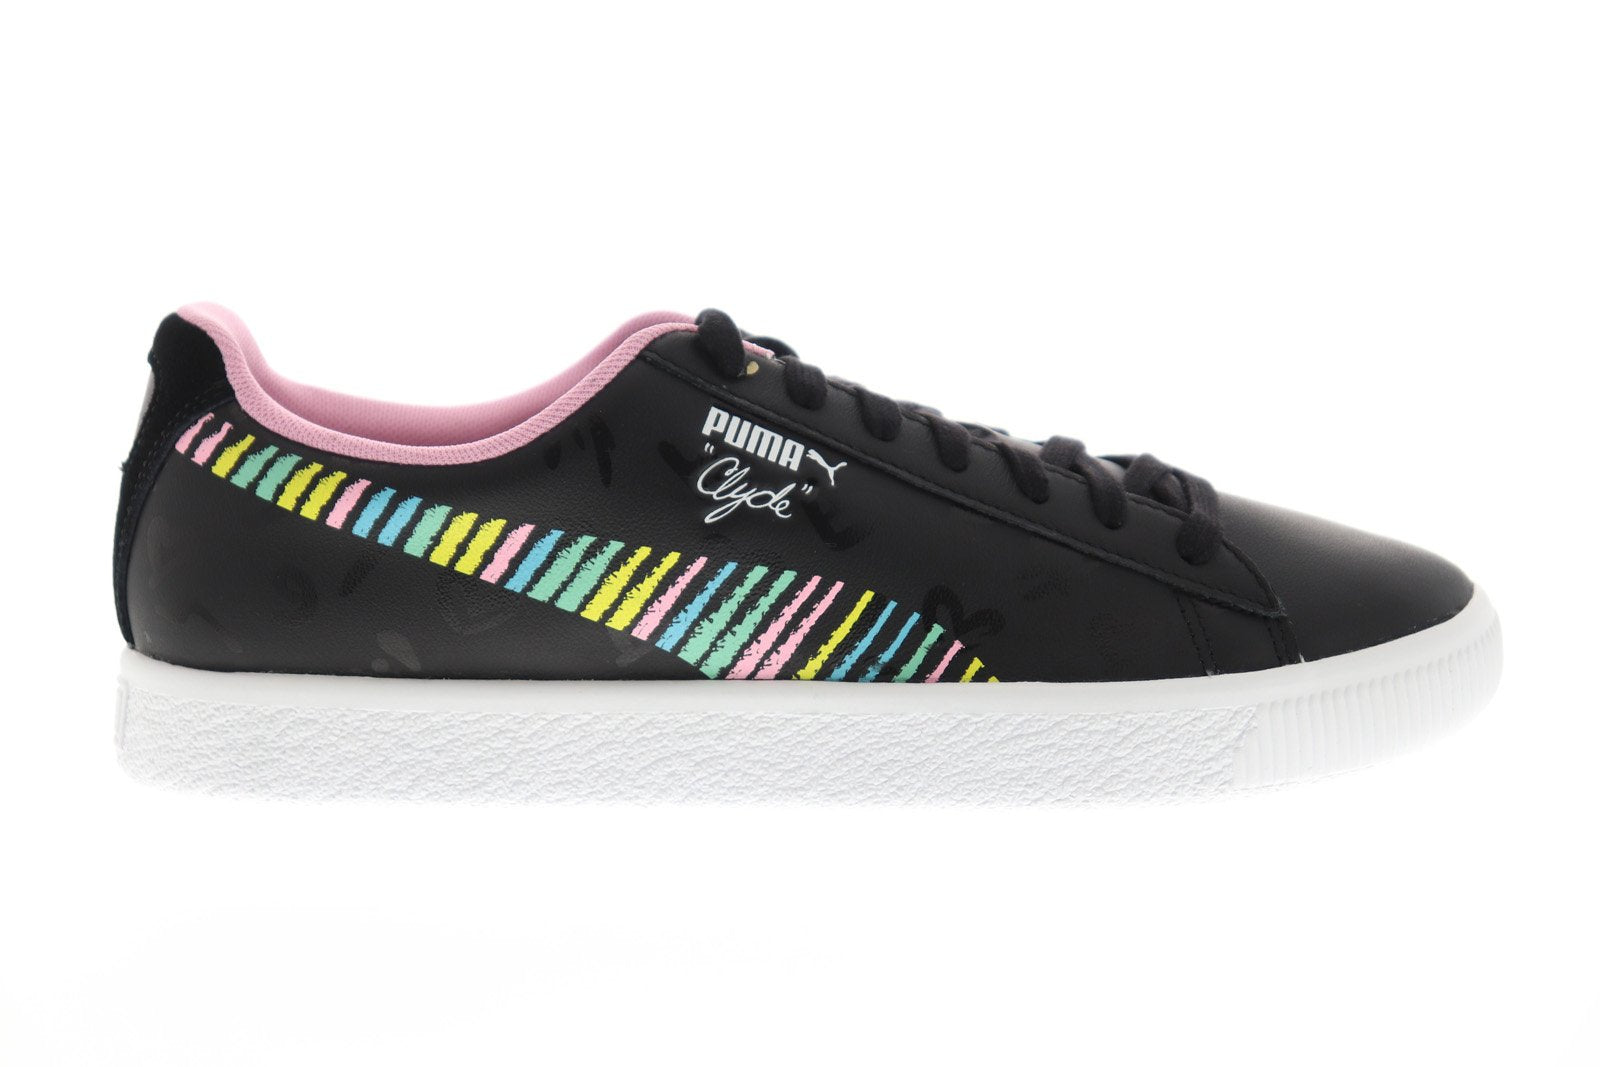 outlet store 7f113 ae5ae Puma Clyde Bradley Theodore Mens Black Leather Low Top ...